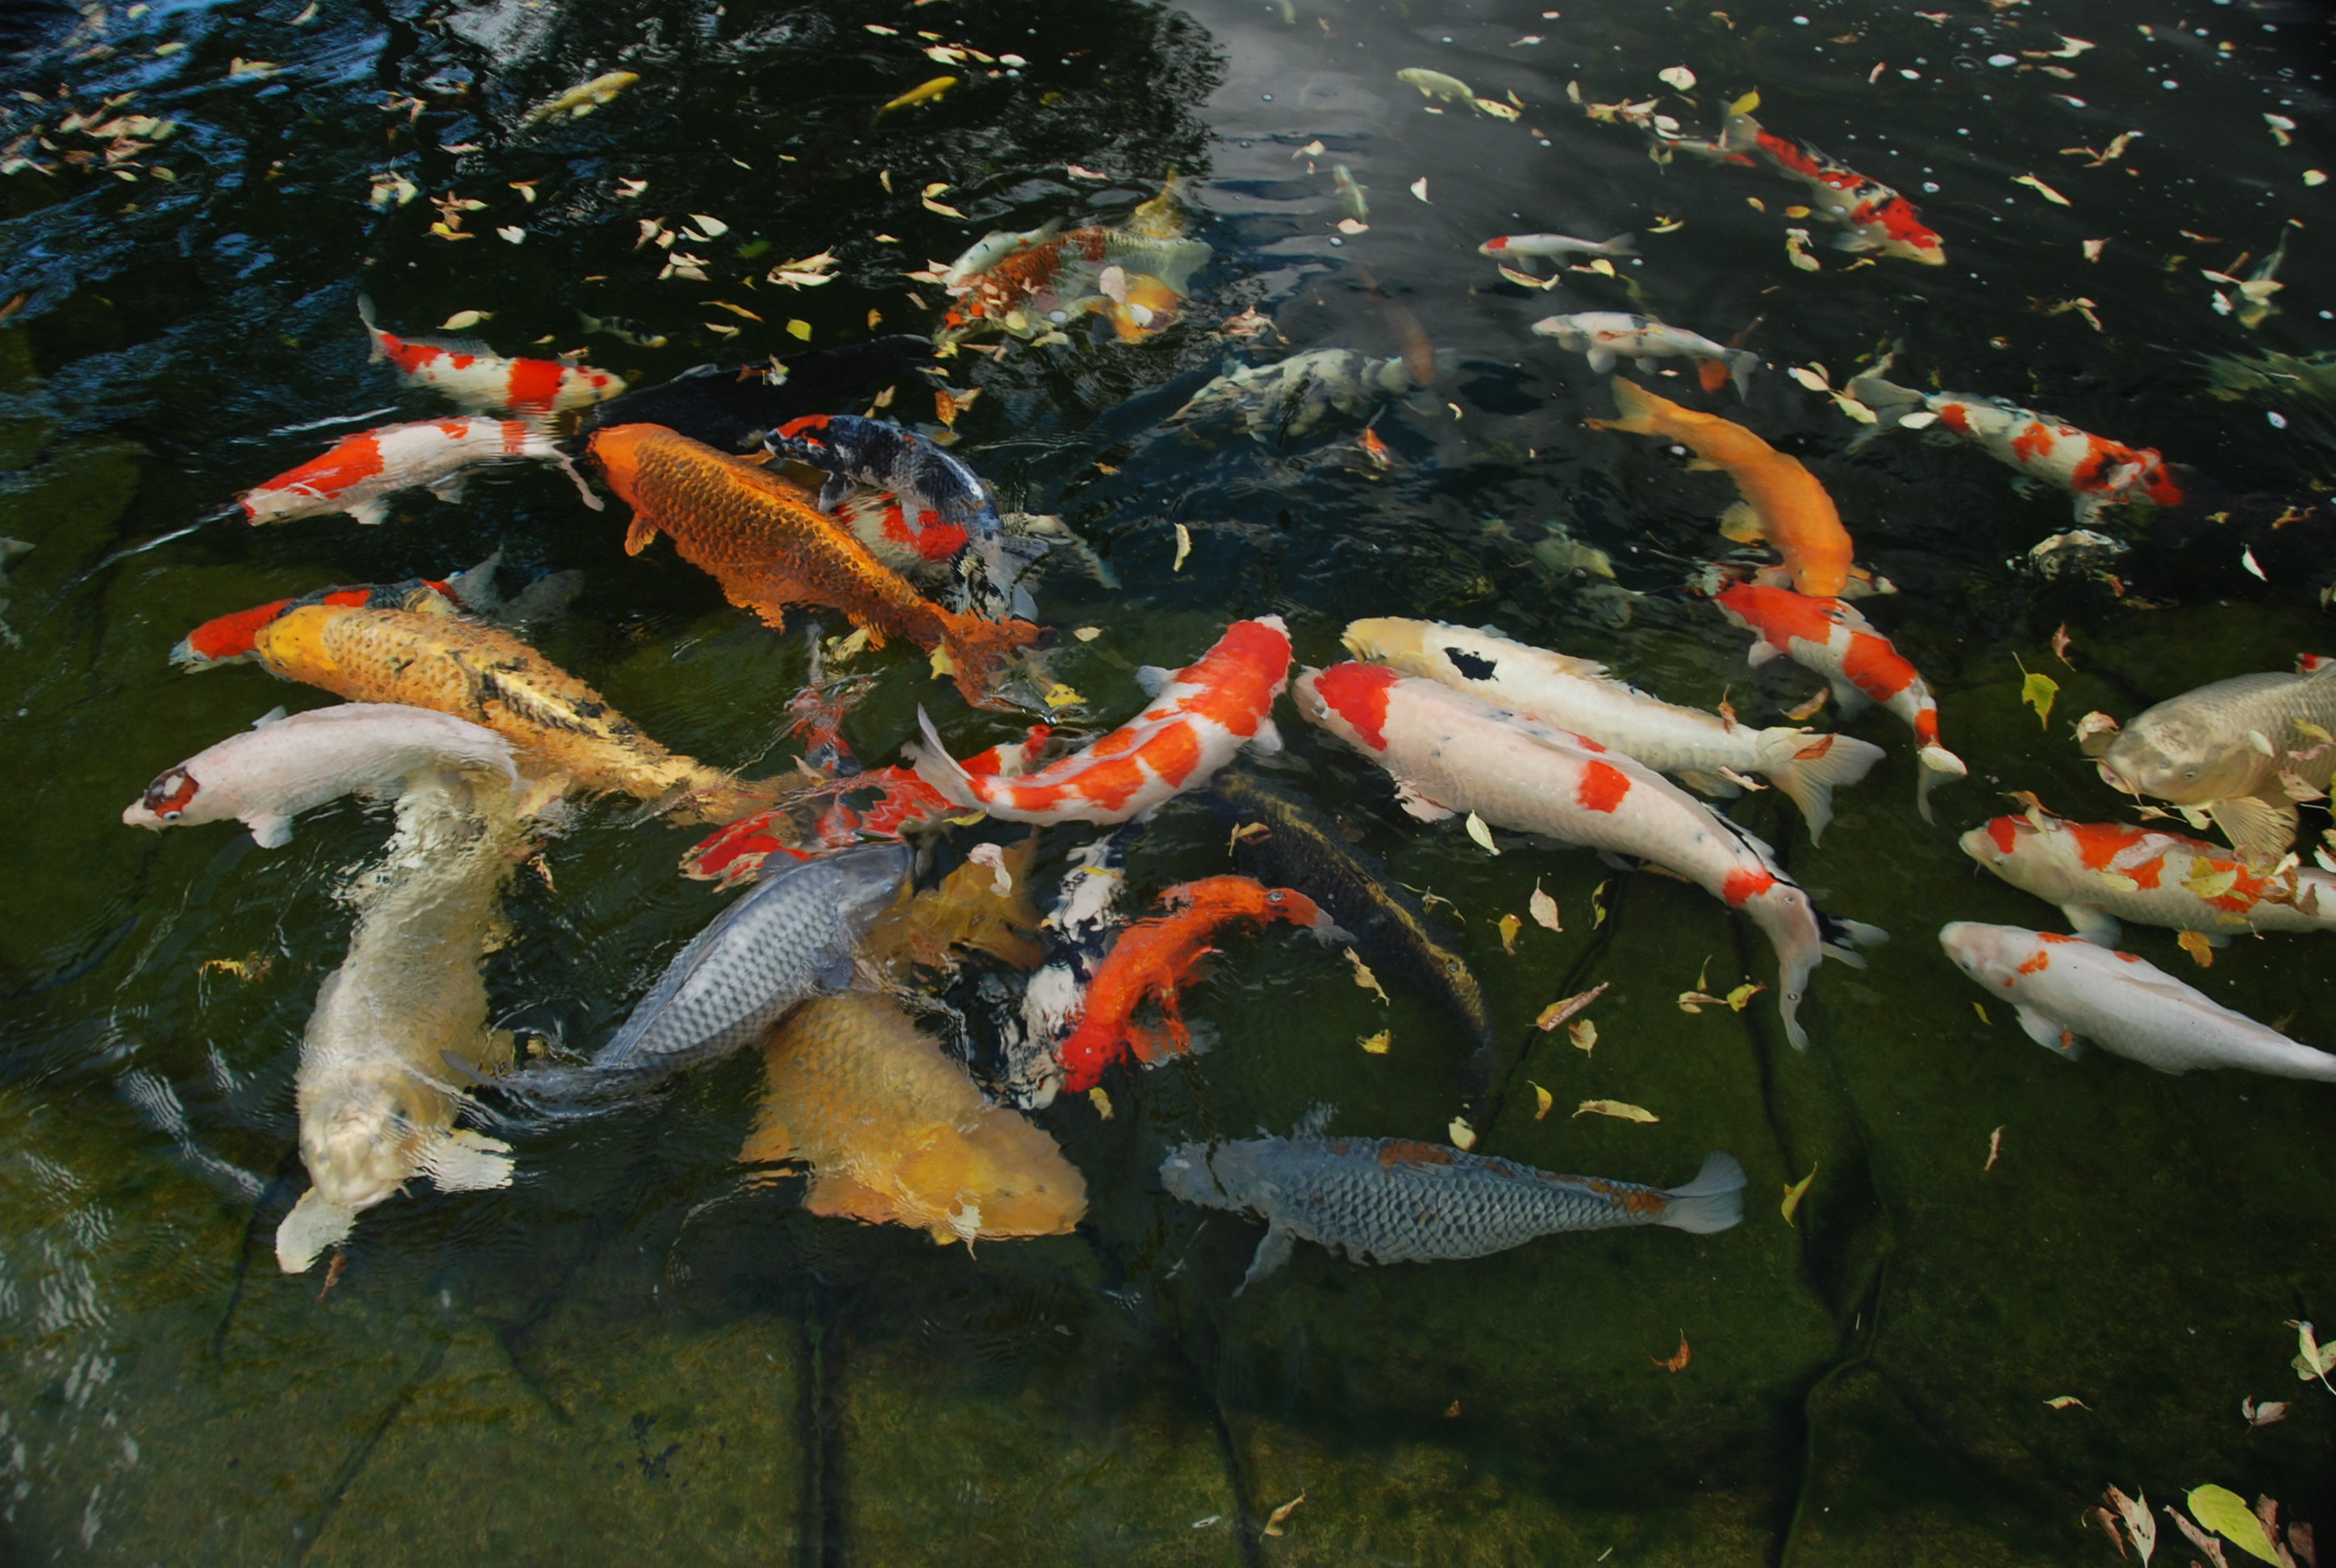 Koi acres imported japanese koi online shopping for koi for Japanese koi carp fish